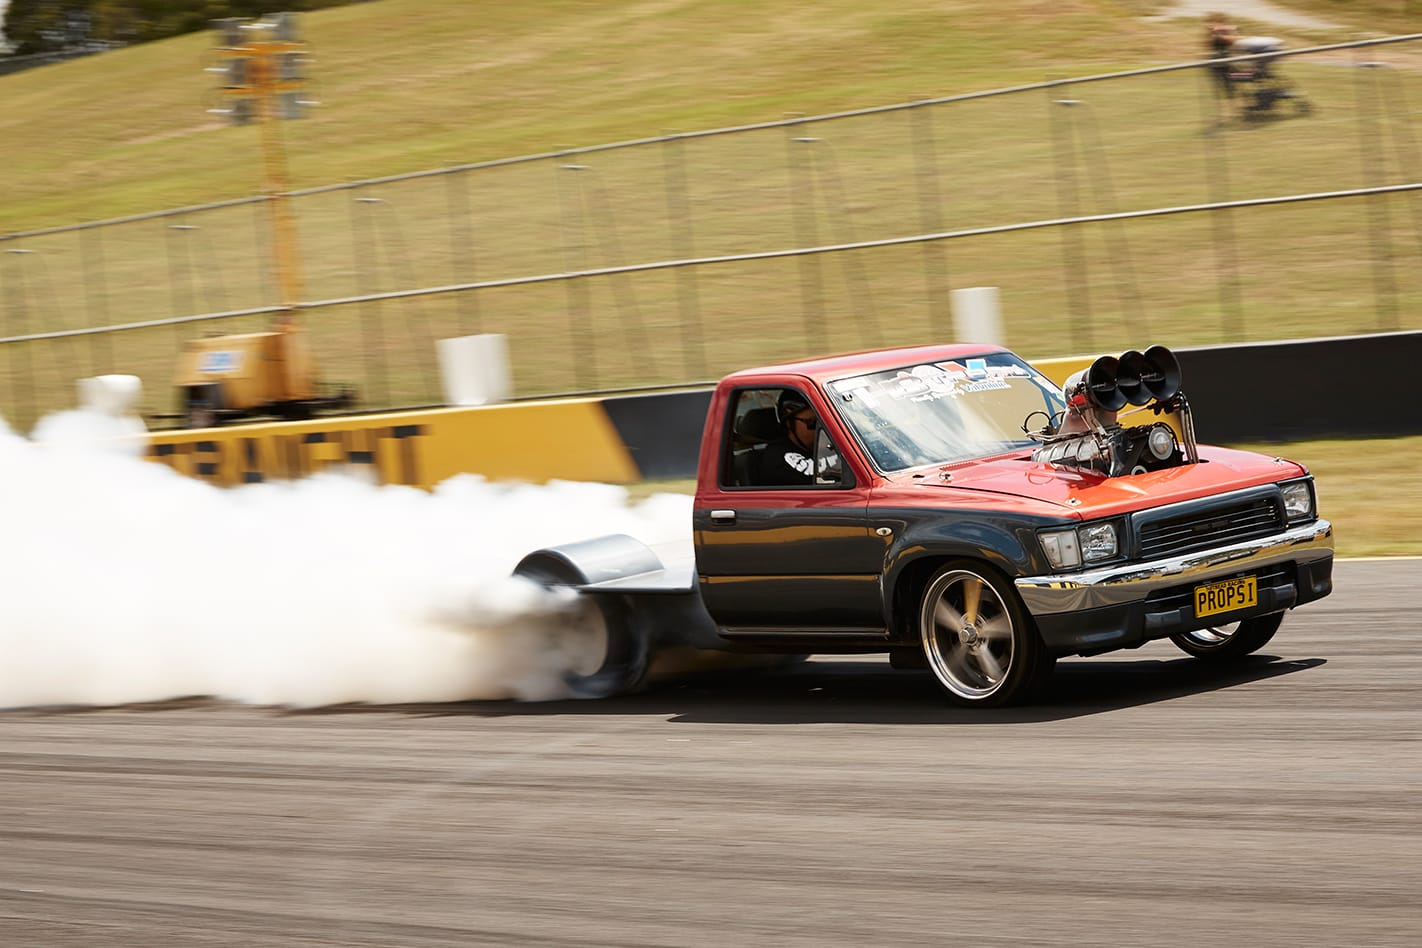 Dave Pendlebury HiLux at Powercruise